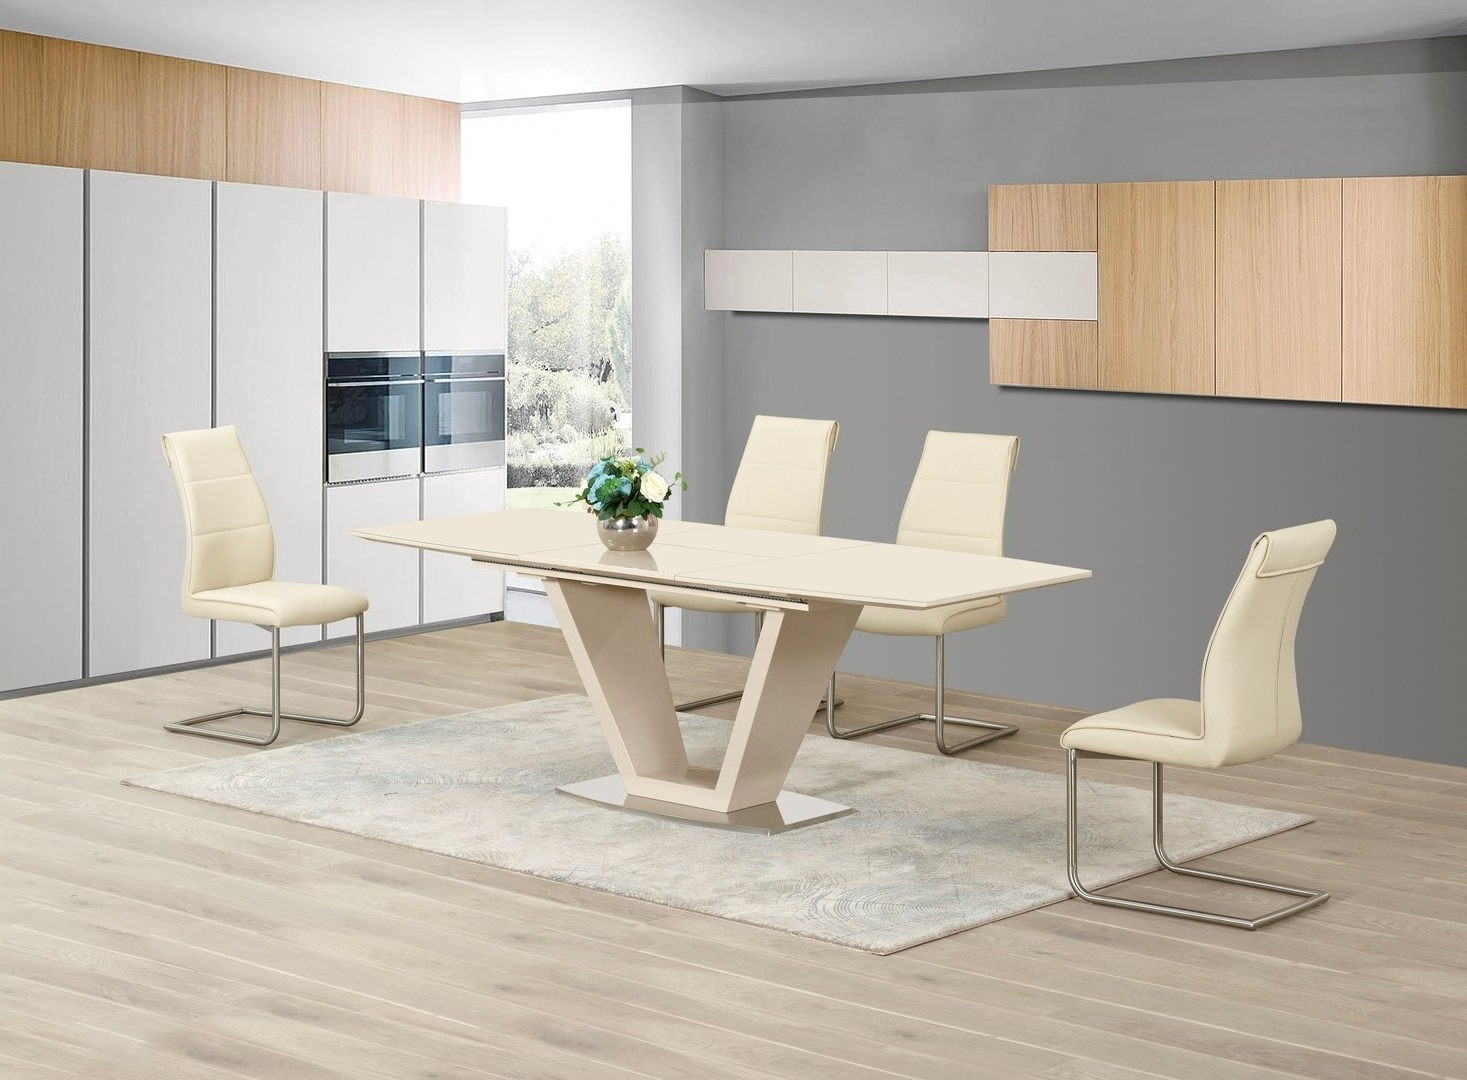 Extending Glass Dining Tables And 8 Chairs regarding Famous Extending Cream Glass High Gloss Dining Table And 8 Cream Chairs